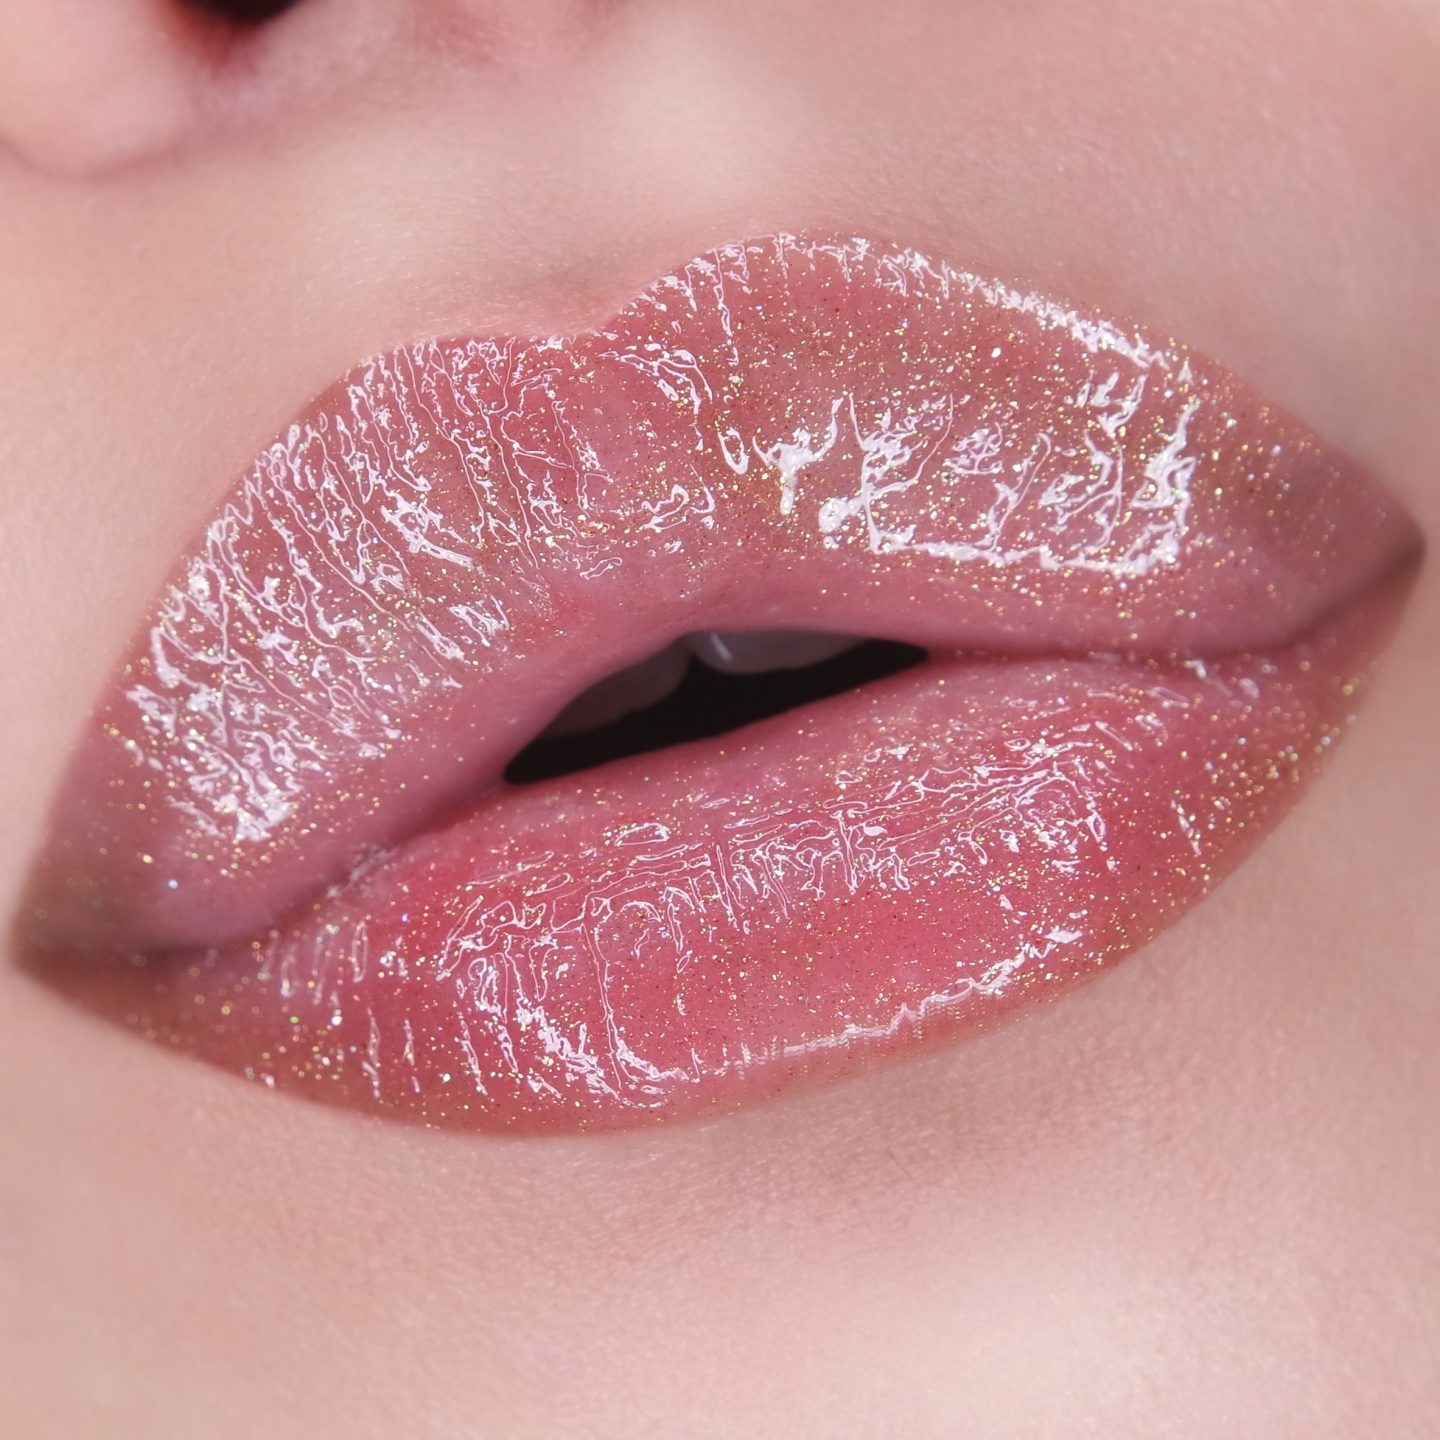 NARS Lip Gloss in Sexy Time Swatch